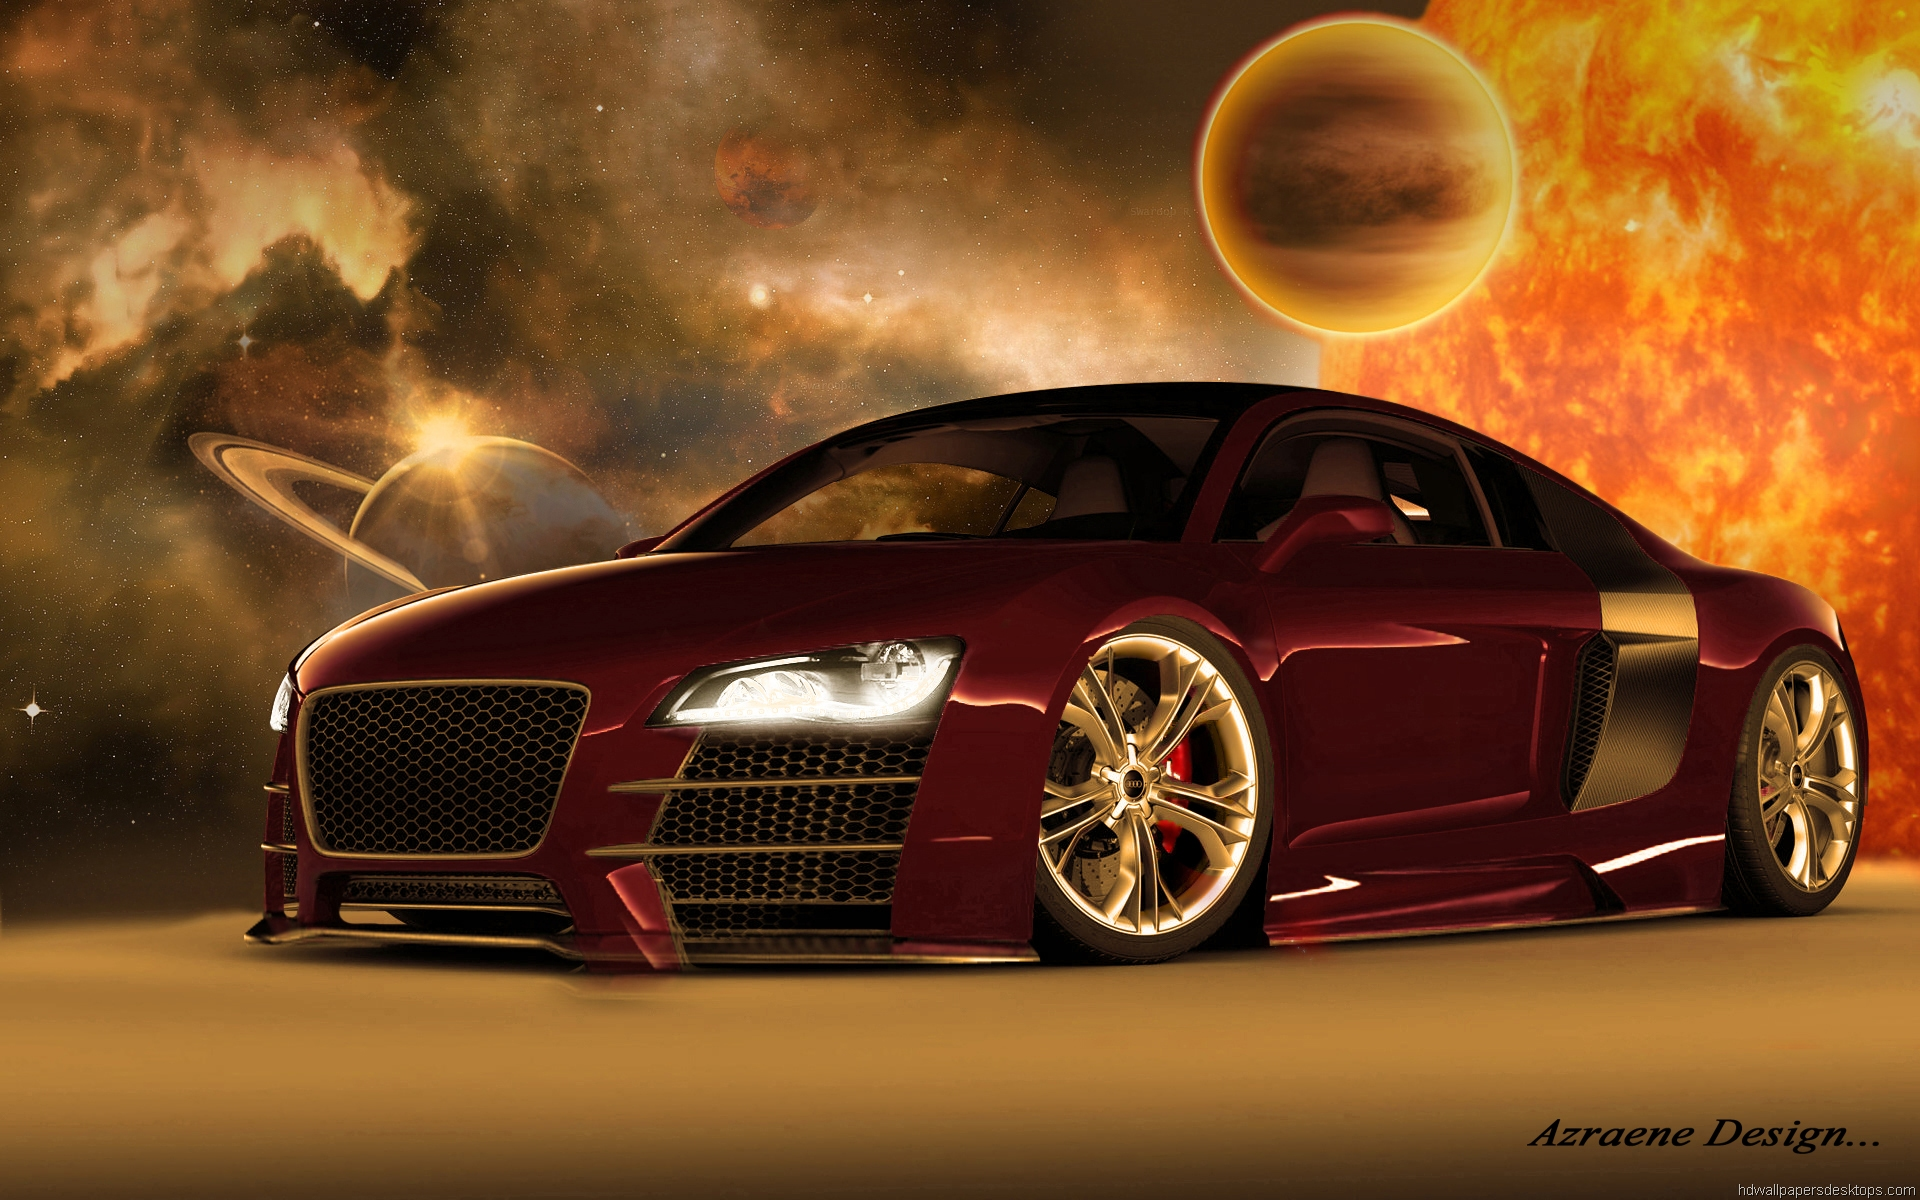 cars wallpapers hd full hd 1080p desktop backgrounds 1920x1200 1920x1200